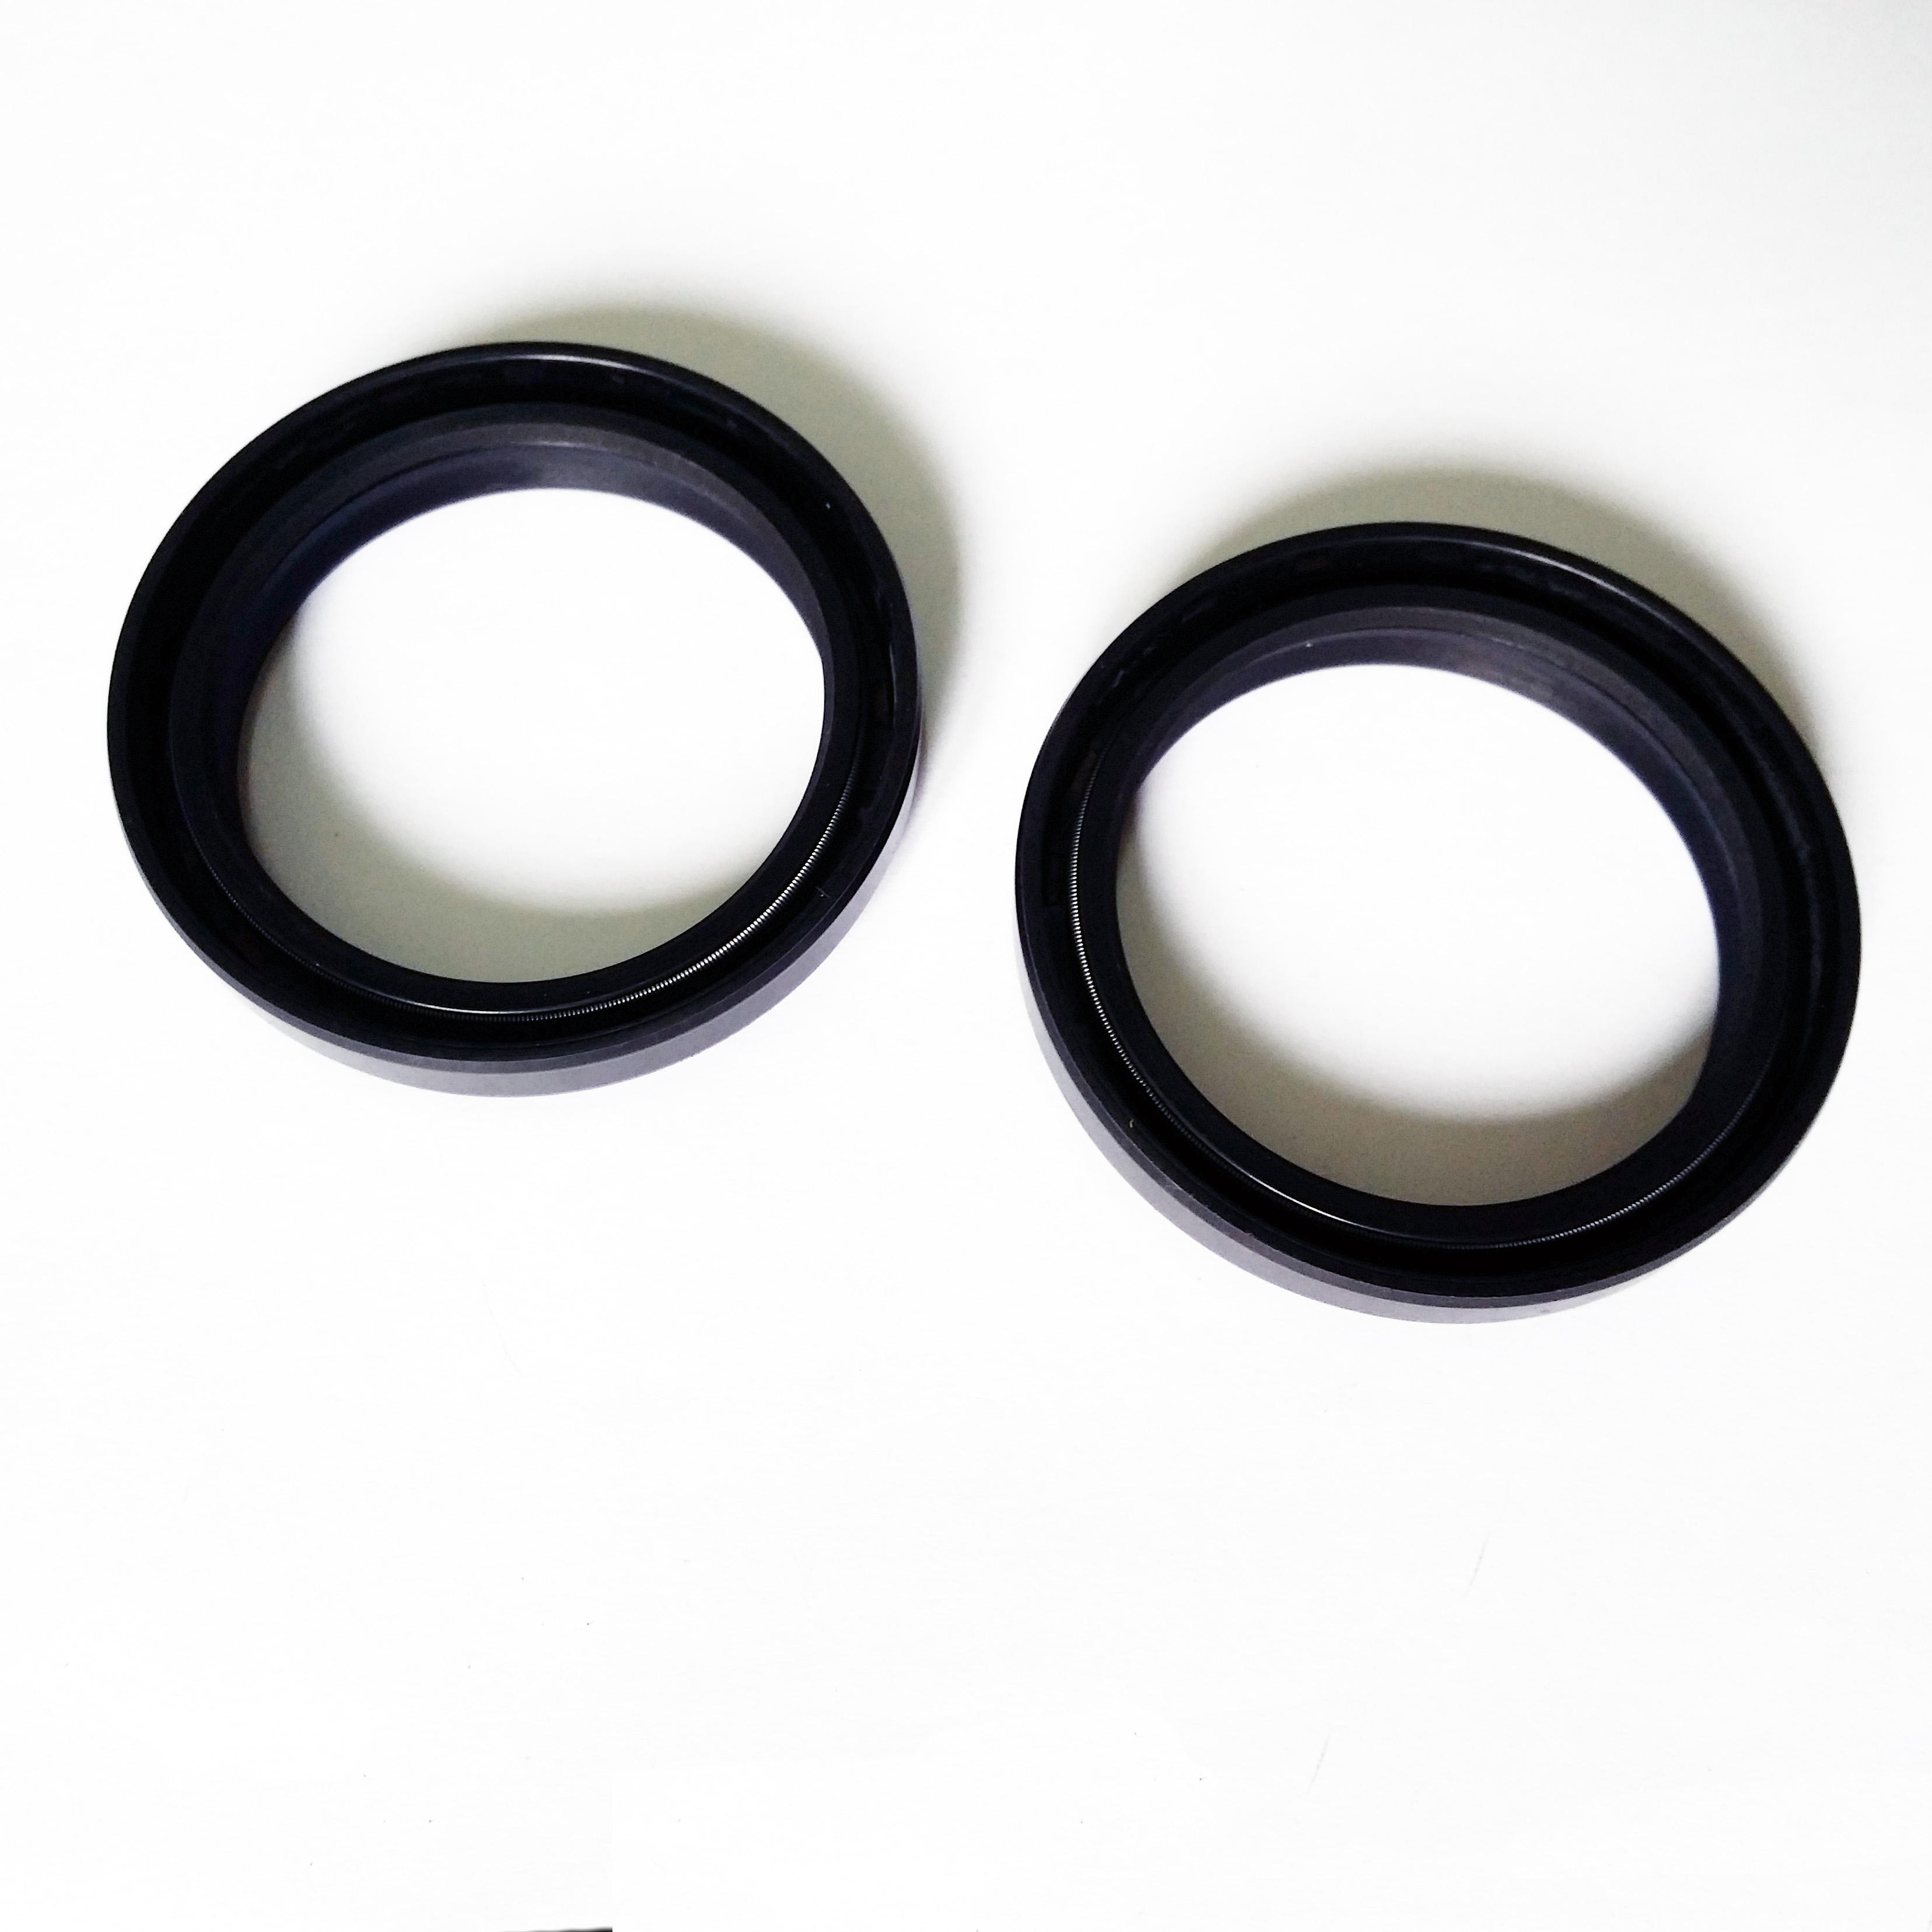 K-Tech Suzuki RM250 1991-1995 NOK Front Fork Oil Seals 45x57x11mm